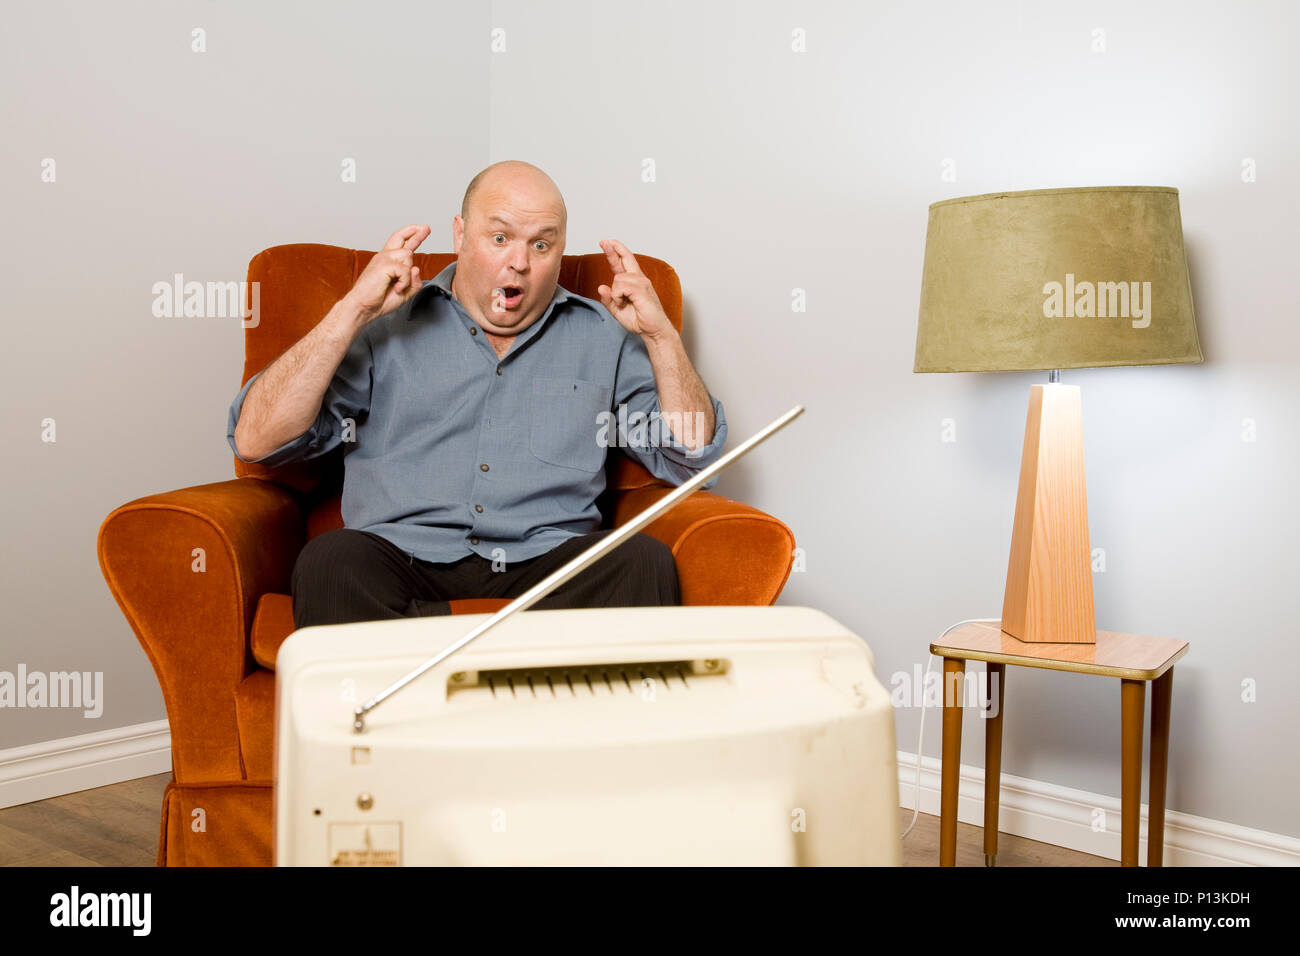 A man with his fingers crossed watching television, perhaps sport or a lottery draw. - Stock Image